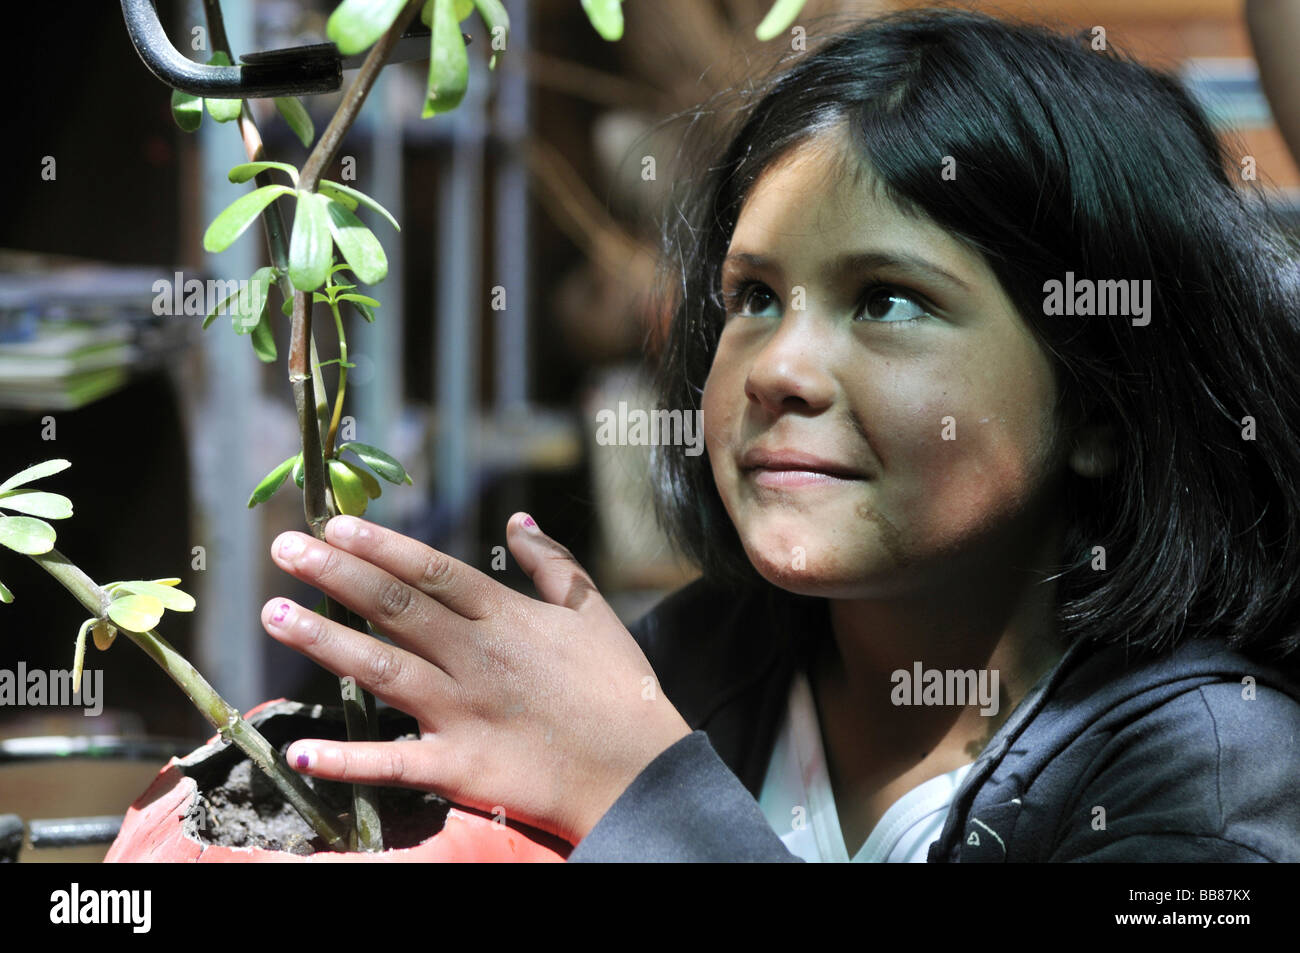 Girl, 9 years old, affectionately nursing a seedling, slums of Cerro Norte, Bogotá, Columbia - Stock Image